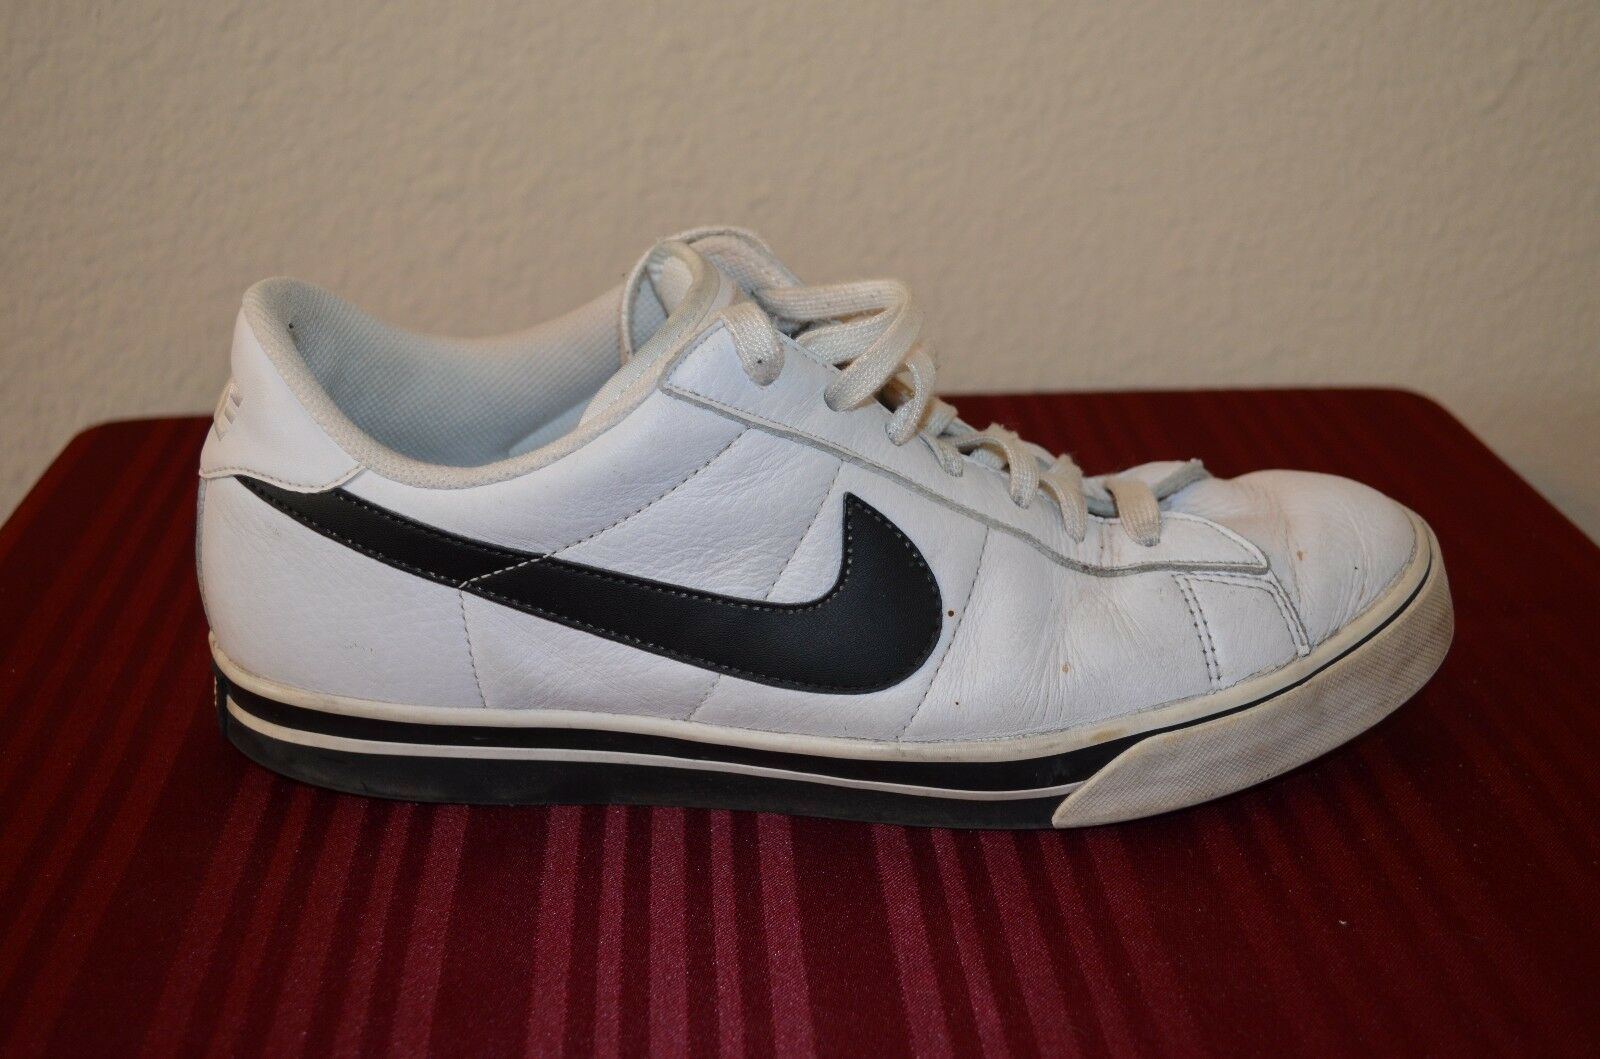 NIKE 100% Authentic White Sneaker Men Comfortable  New shoes for men and women, limited time discount